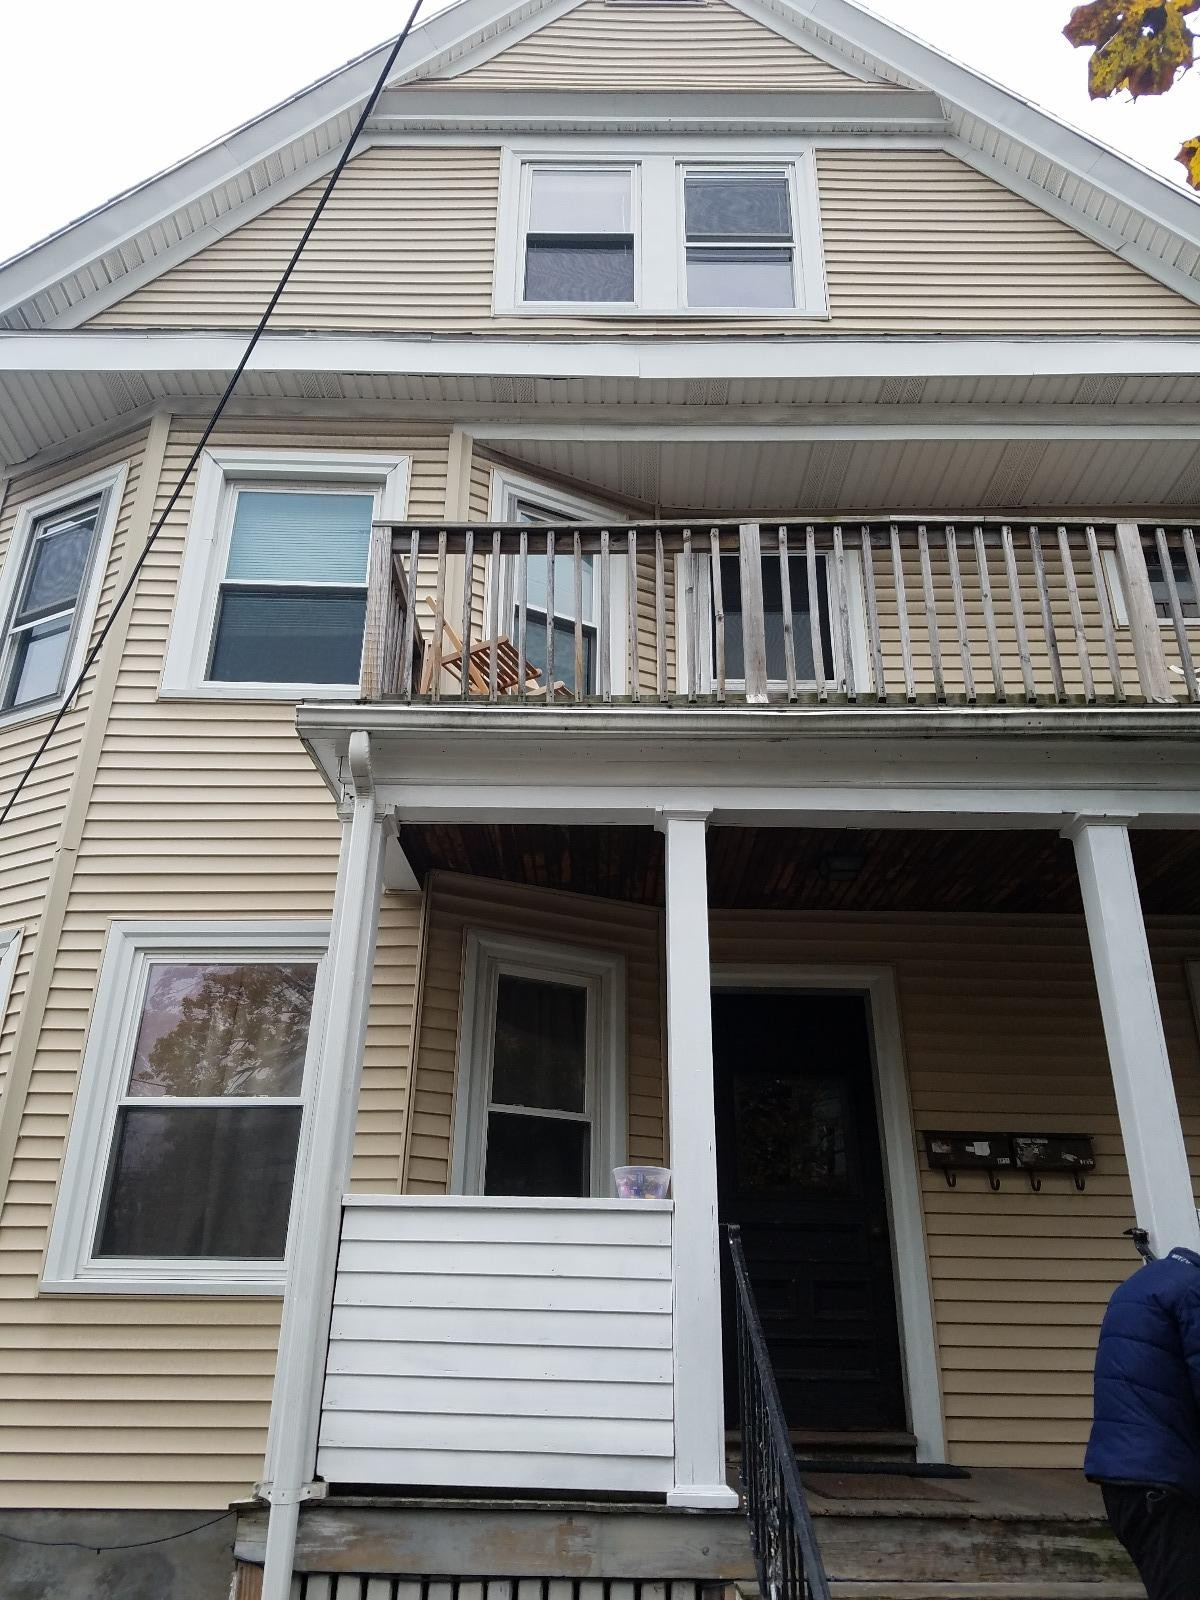 Porter st 2 somerville ma 02143 6 bedroom apartment for rent for 4 800 month zumper for One bedroom apartments somerville ma